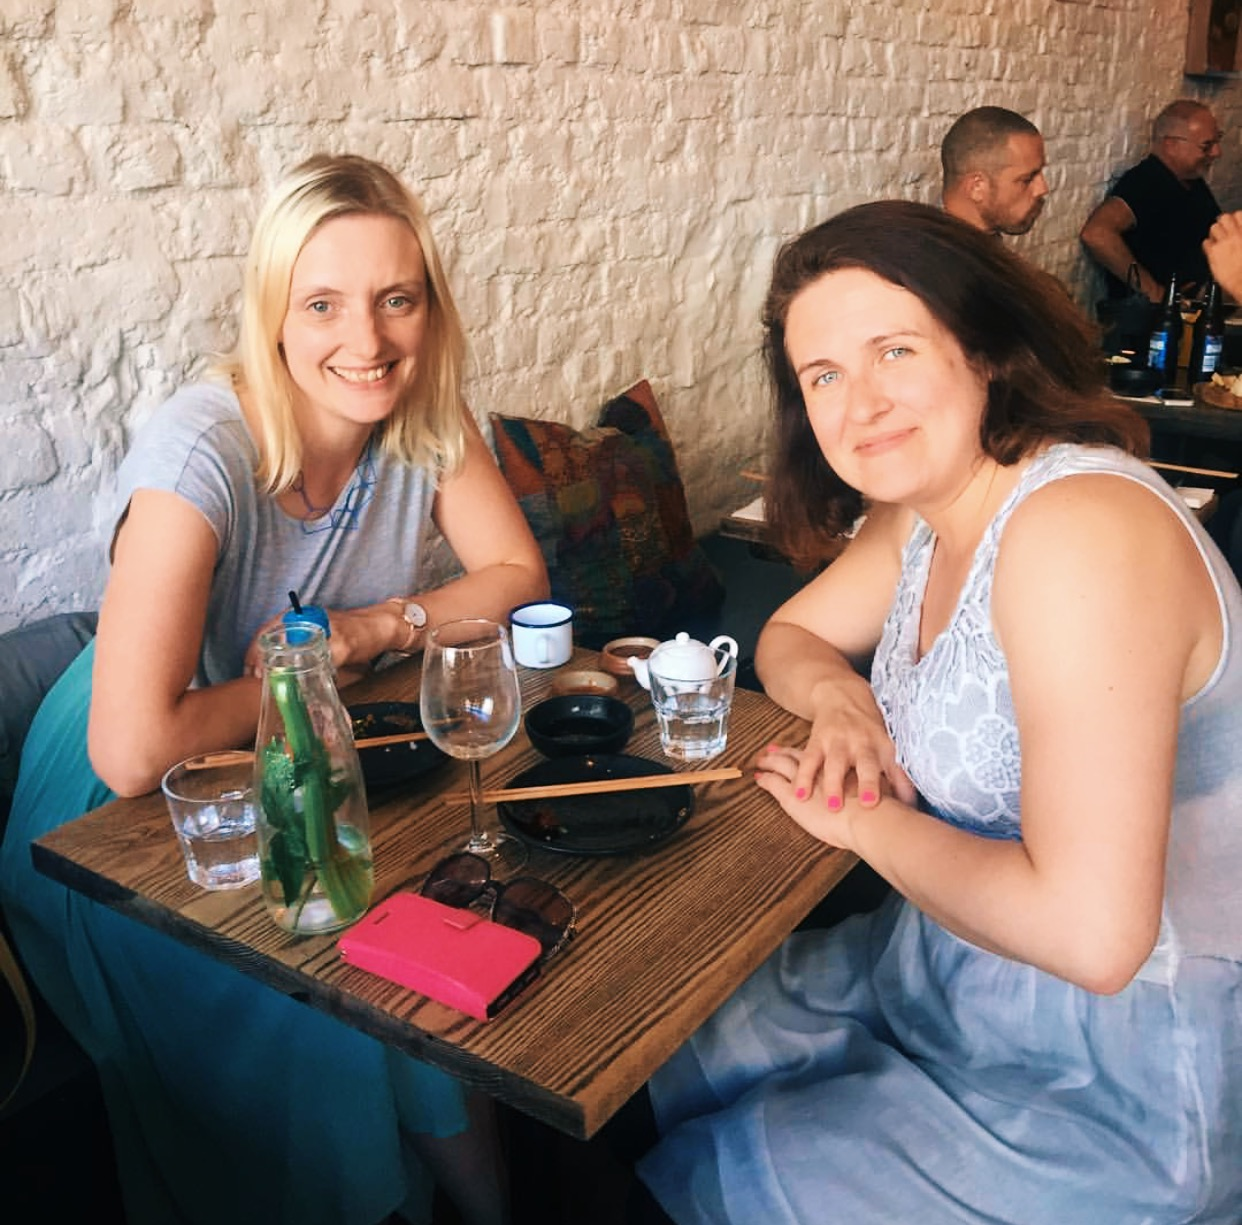 Gemma catching up with Orla Lehane, one of the contributors to  A Girl's Guide to Travelling Alone . Gemma shares more about Orla's Iran experience on the Postcard Academy podcast.